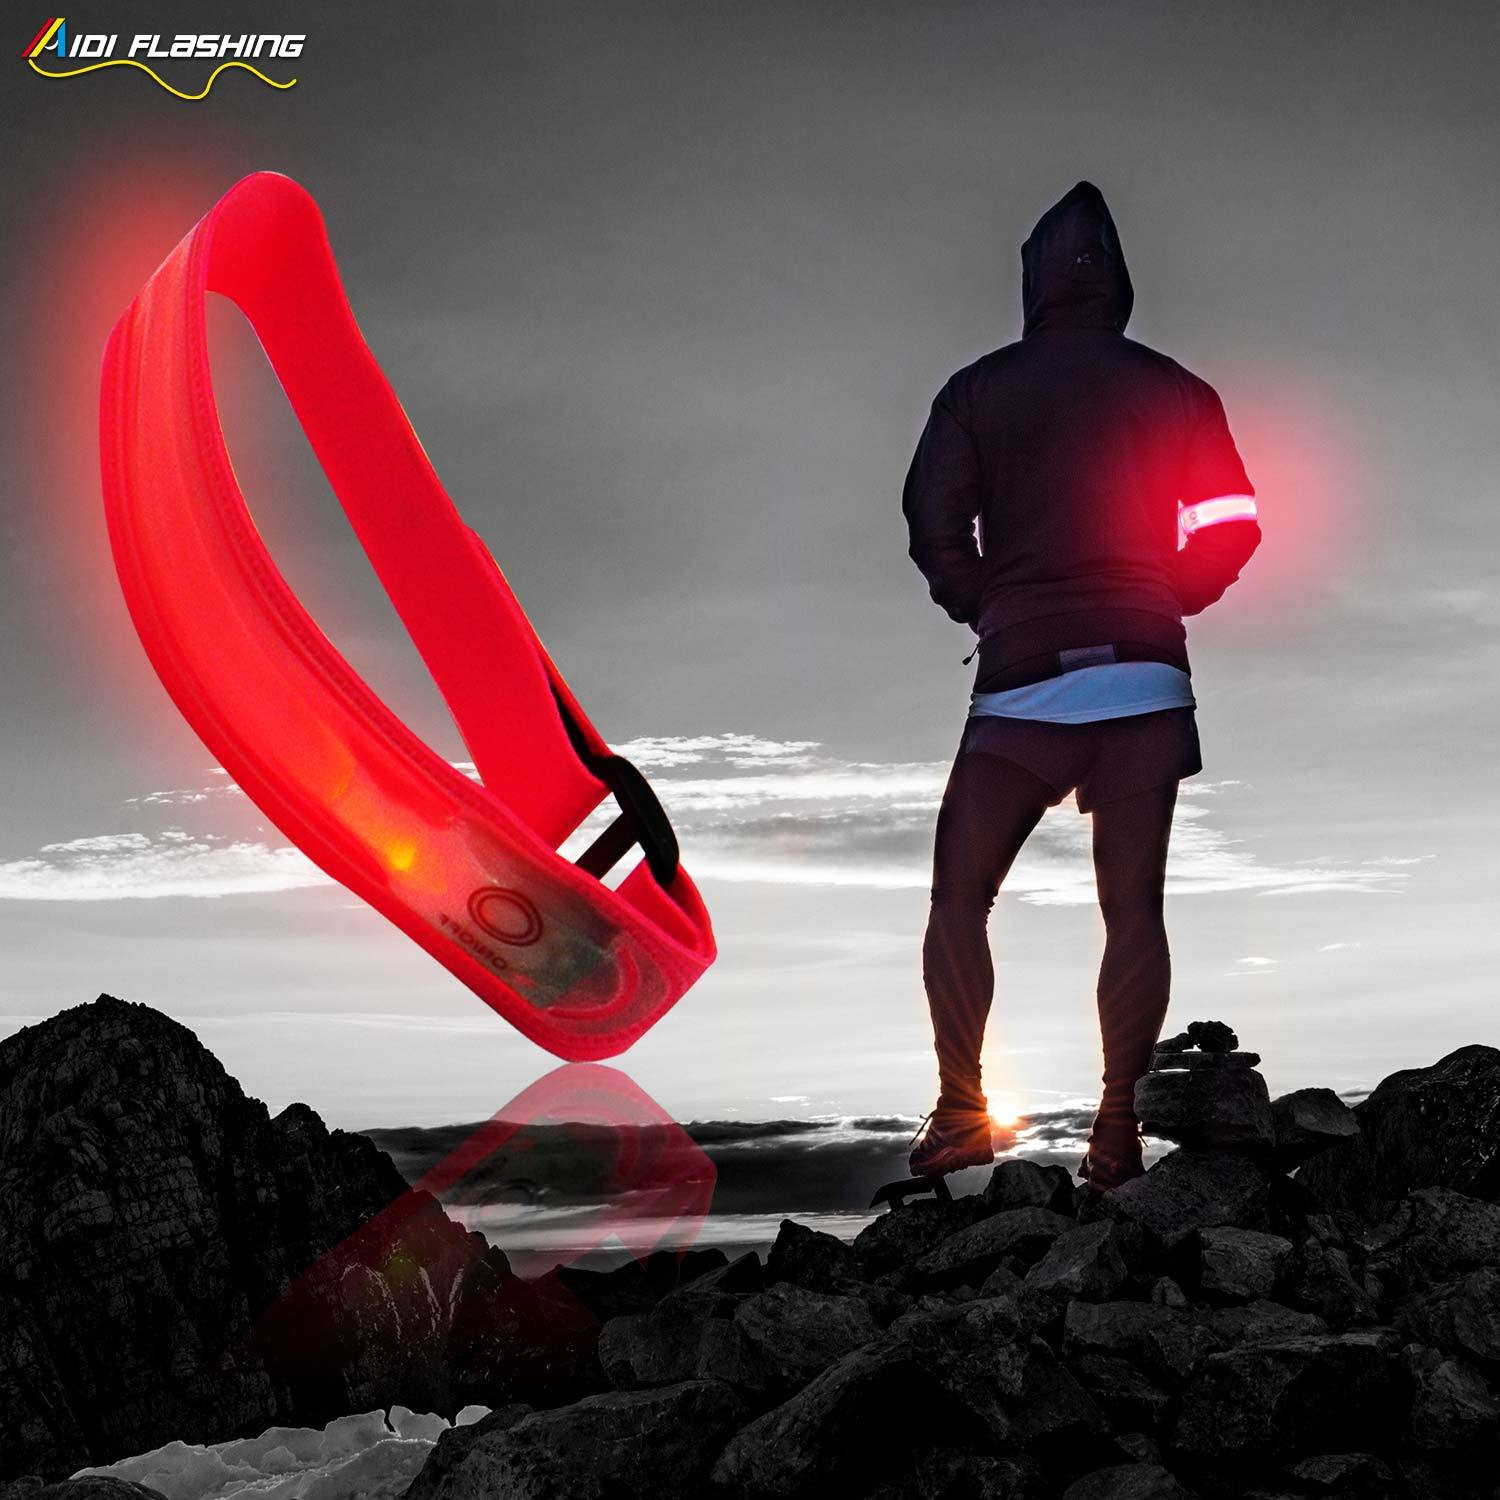 sport glow in the dark armband from China for man AIDI